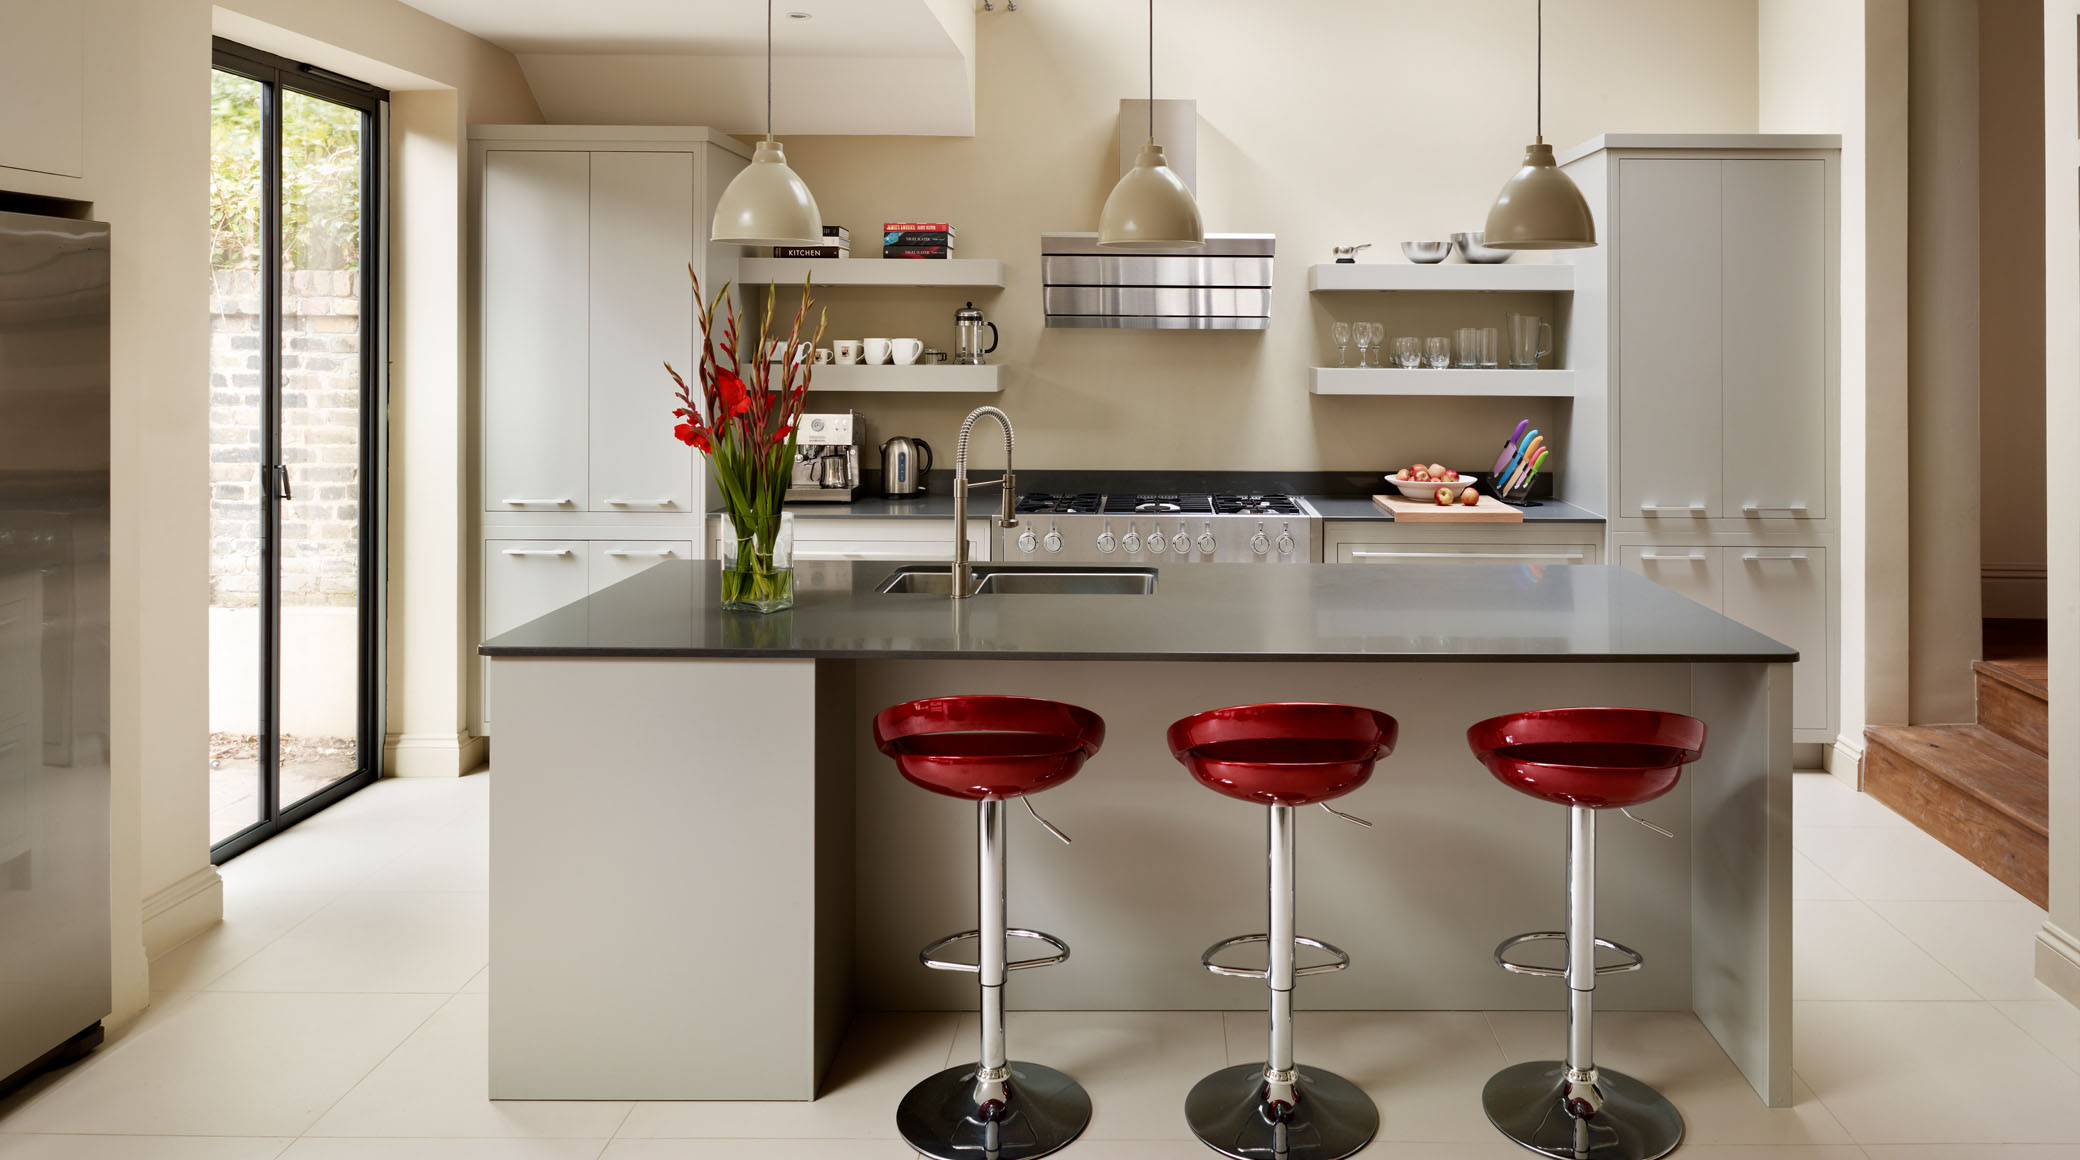 How to create an ideal kitchen for parties my decorative for Linear kitchen design